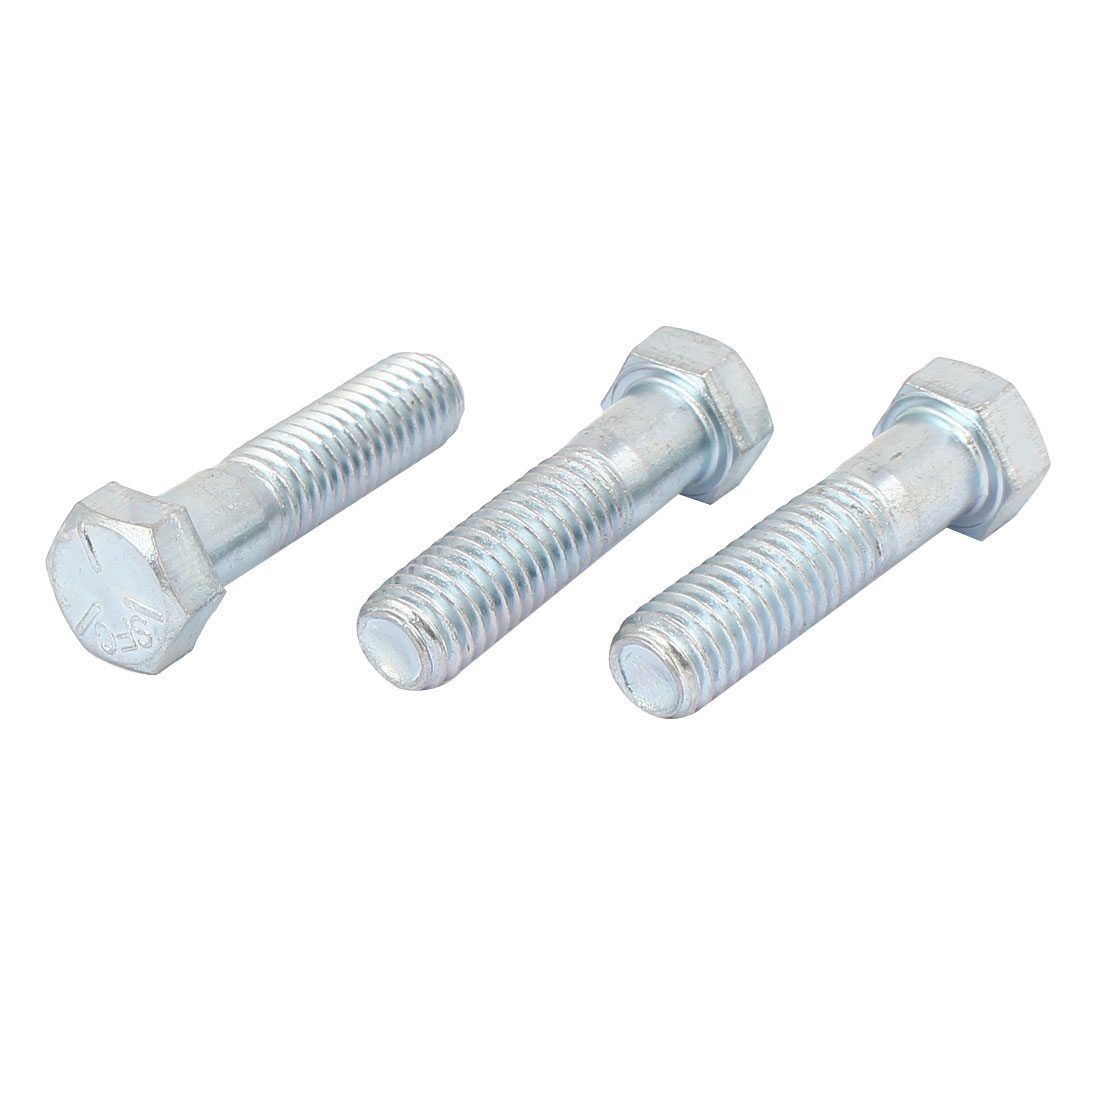 "7/16"" x 1-3/4"" Grade 5 UNC Zinc Plated Hex Head Cap Screw Threaded Bolt 3pcs"